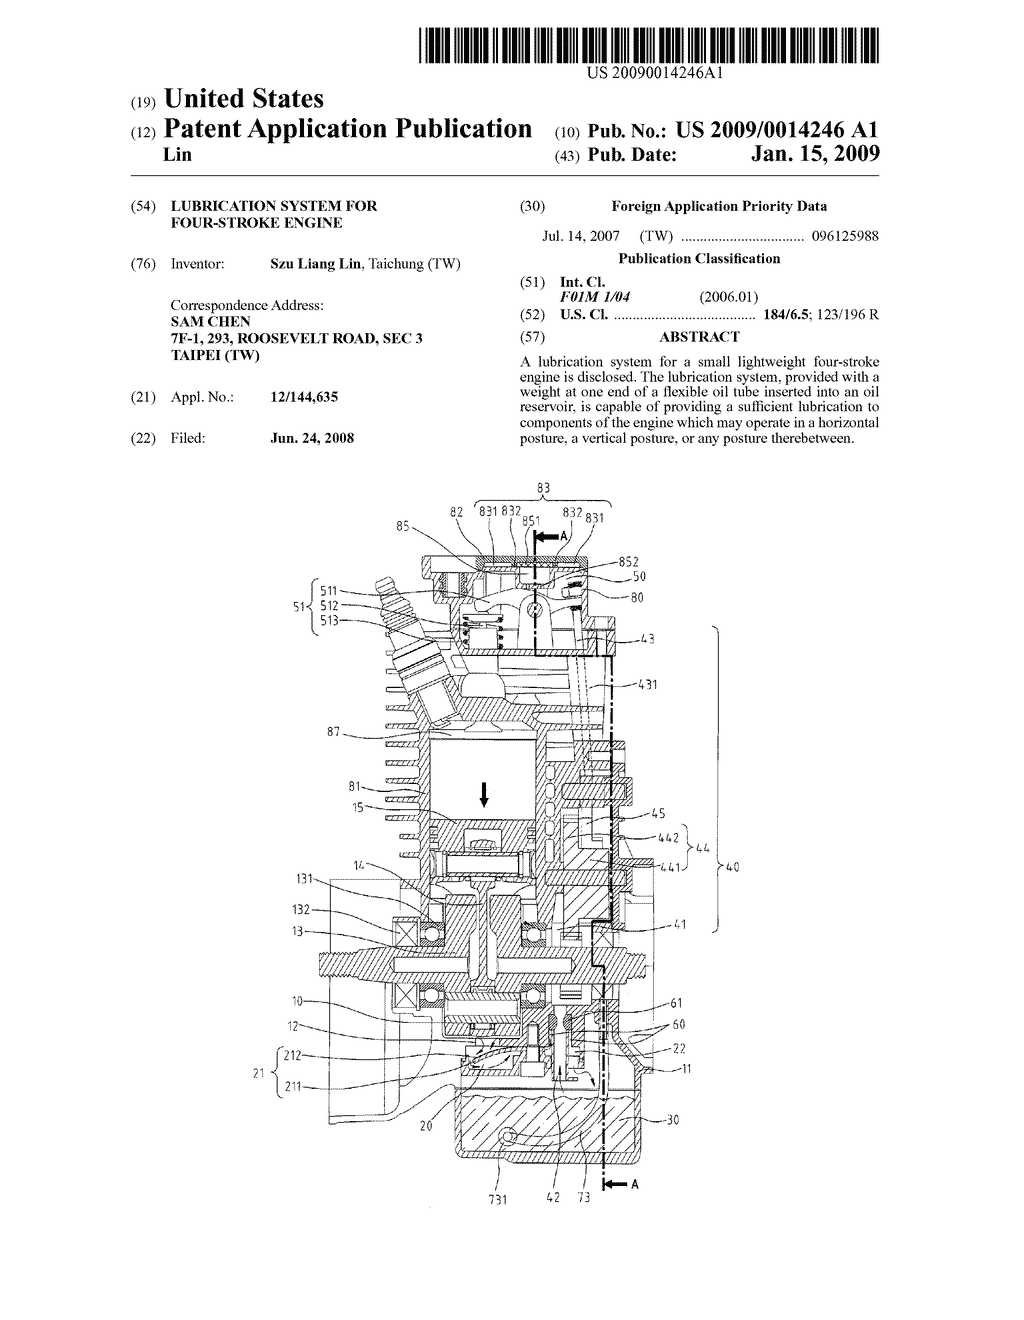 hight resolution of lubrication system for four stroke engine diagram schematic and image 01